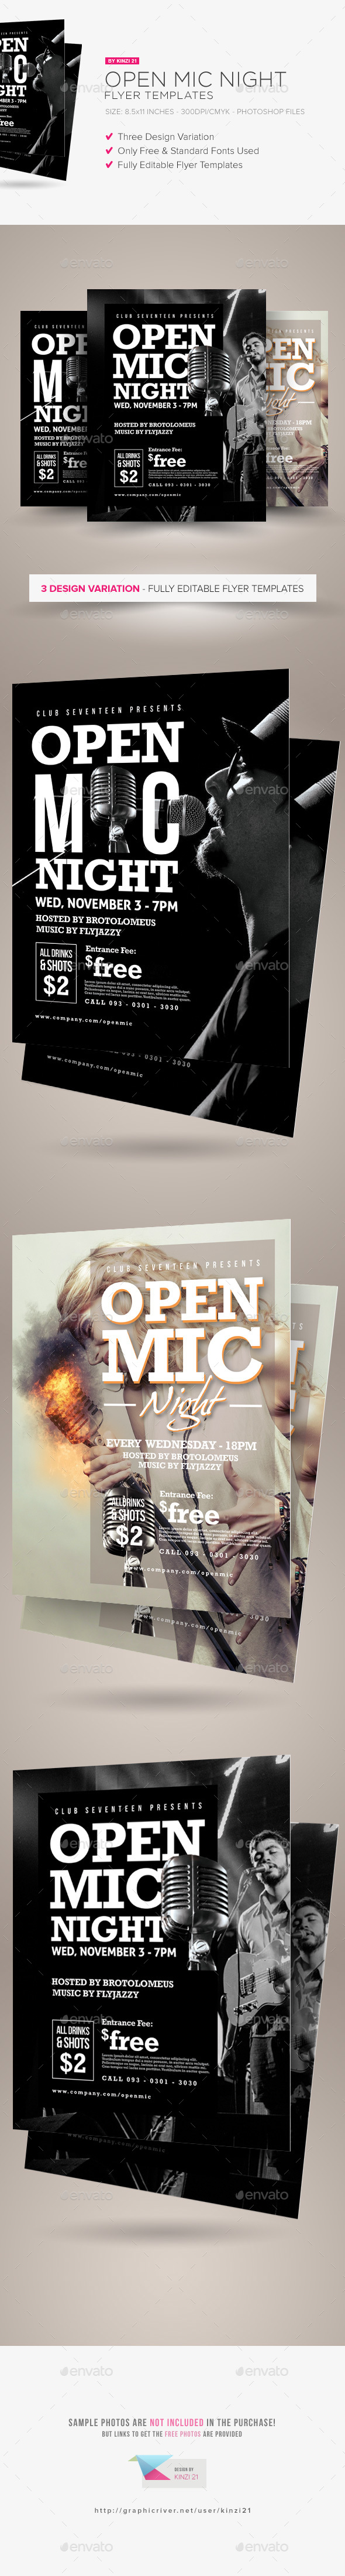 Open Mic Night Flyer Templates - Clubs & Parties Events